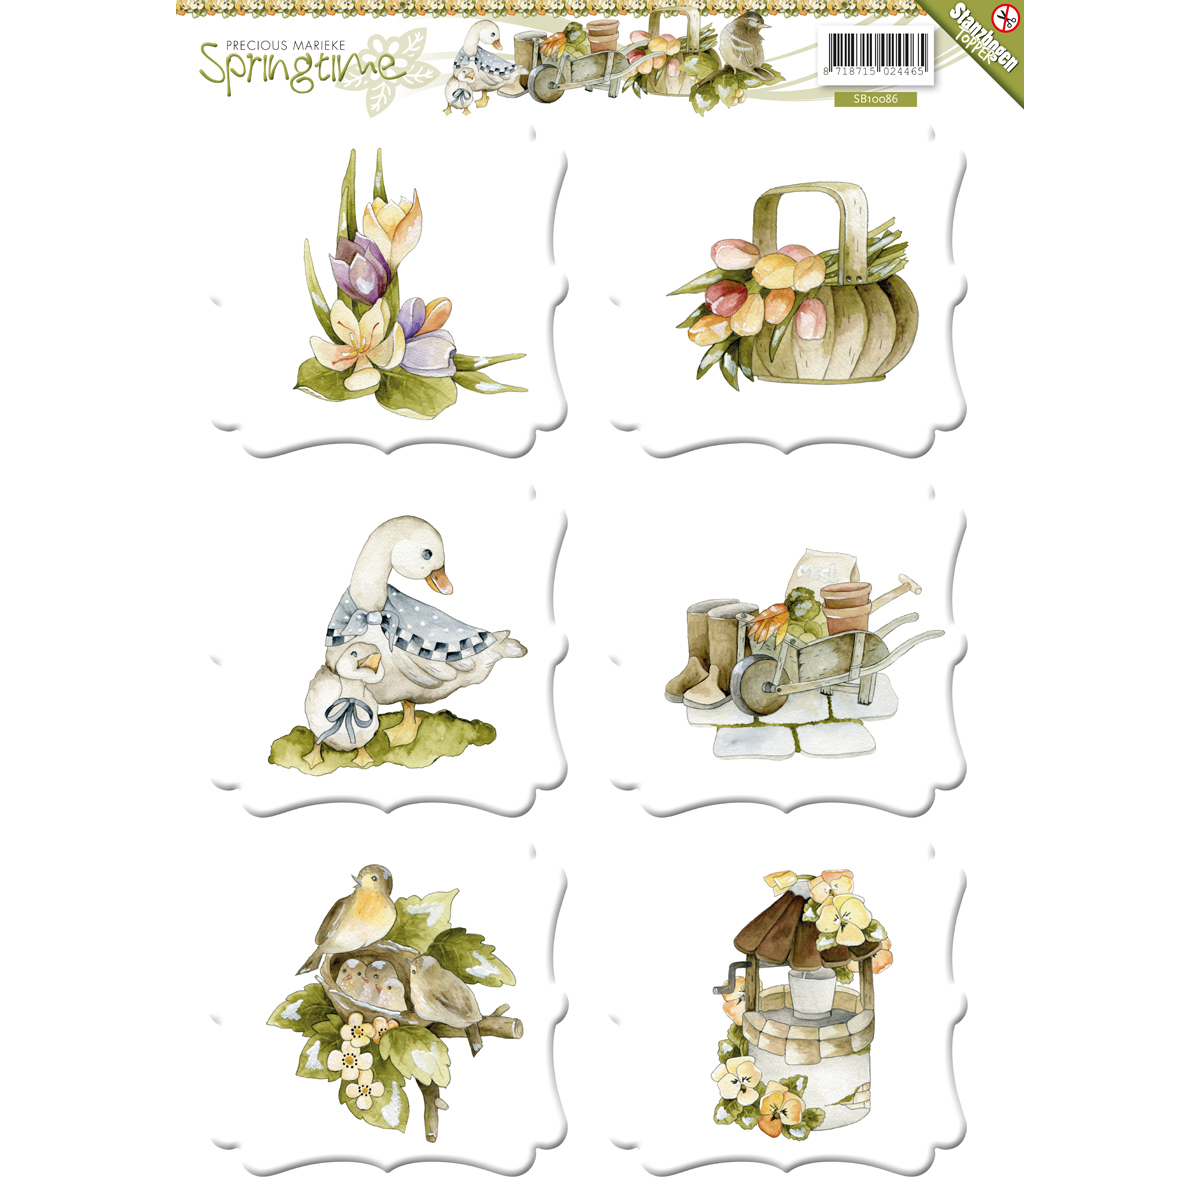 Find It Precious Marieke Springtime Topper Sheet-